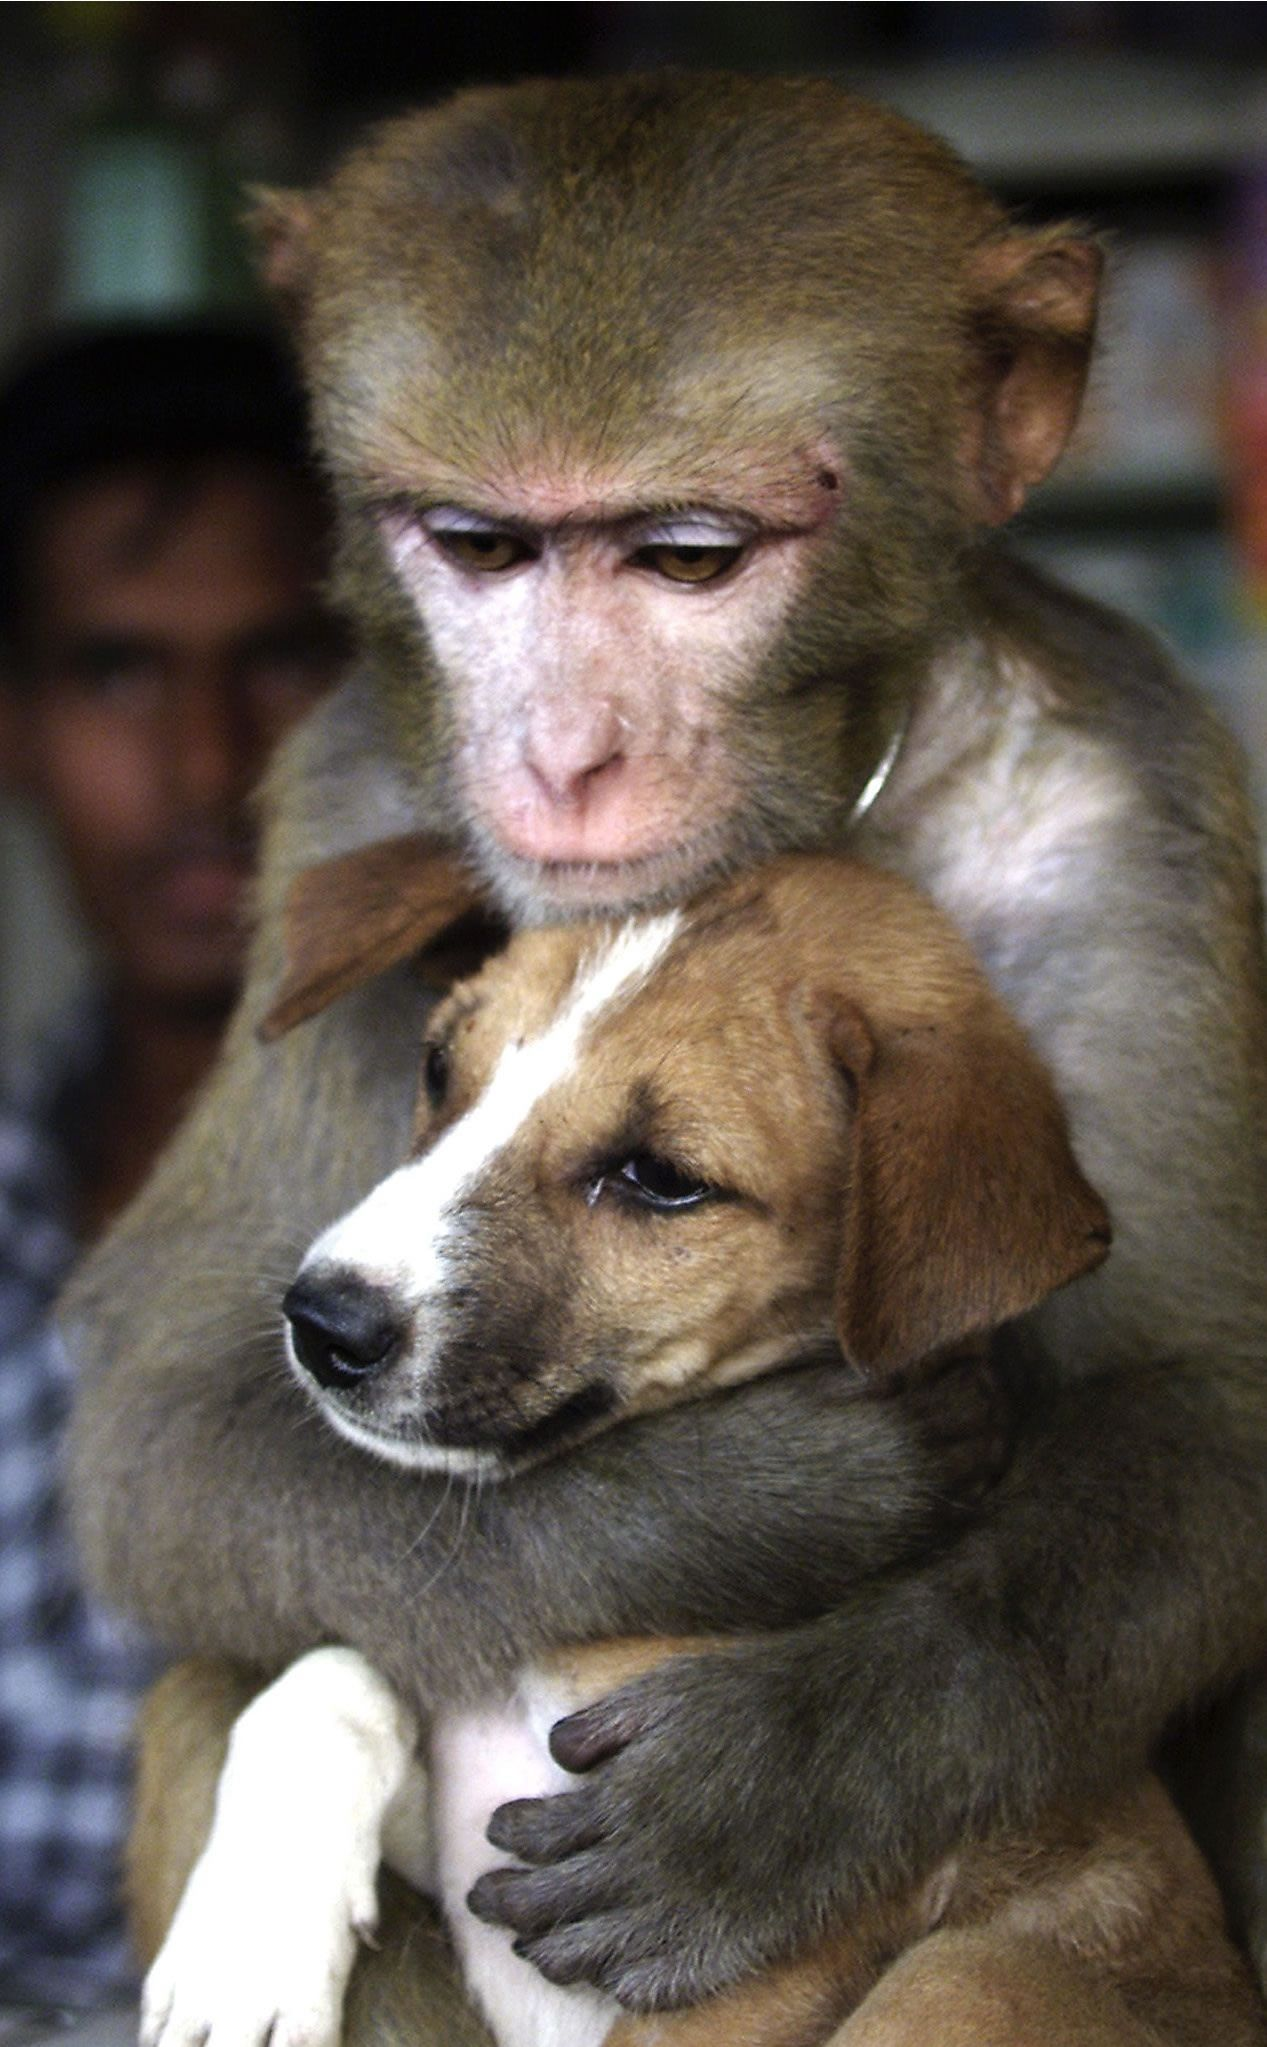 Monkey Hugging Dog